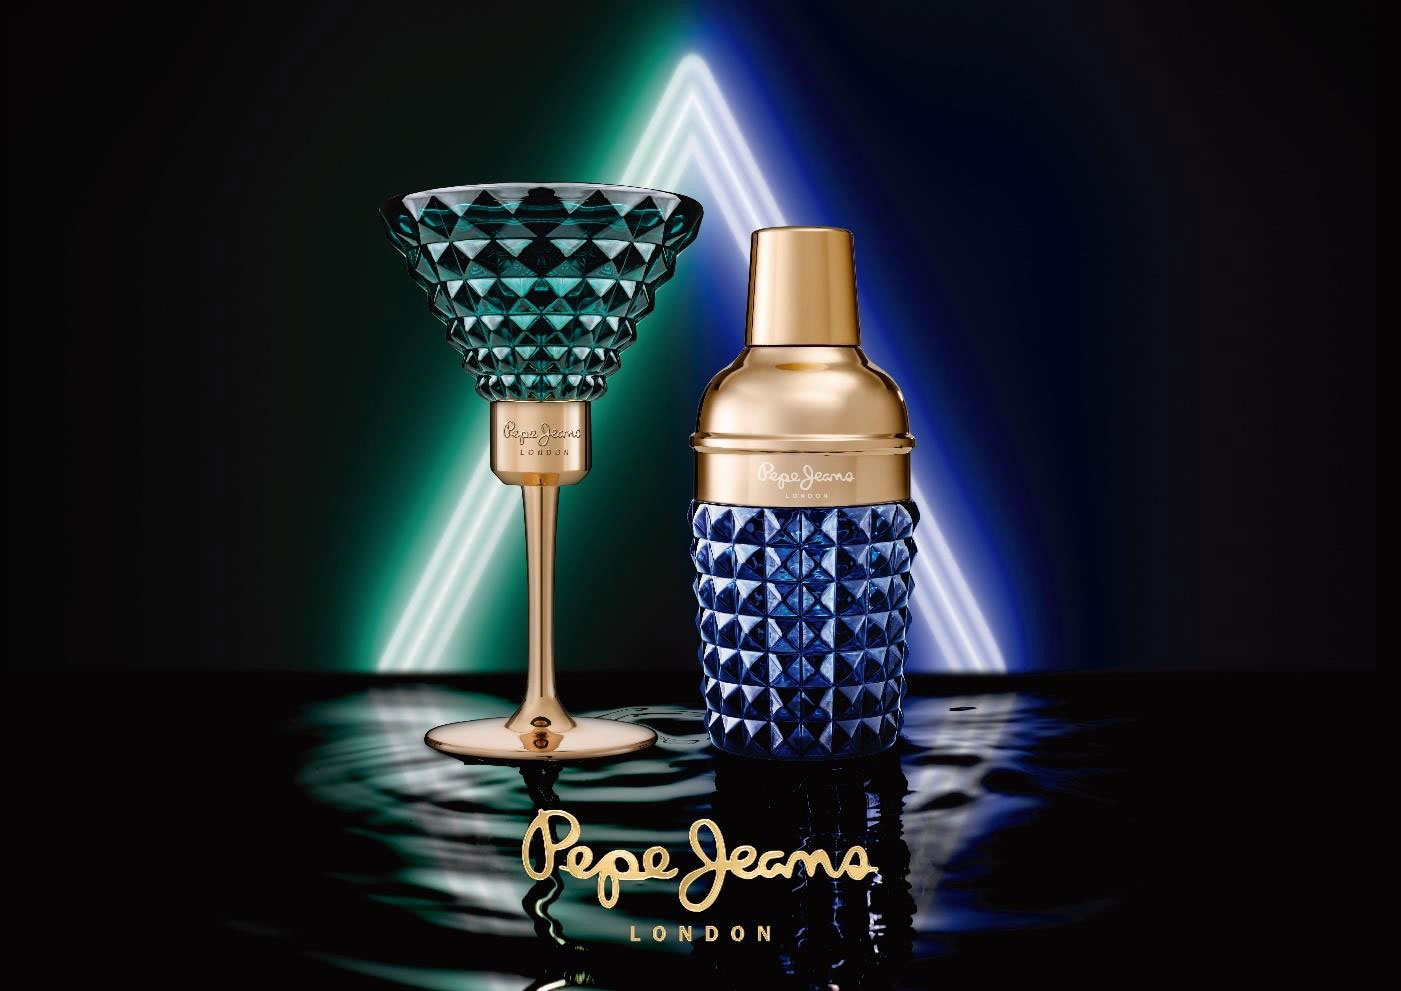 Pepe Jeans Celebrate for Her Pepe Jeans London parfum een